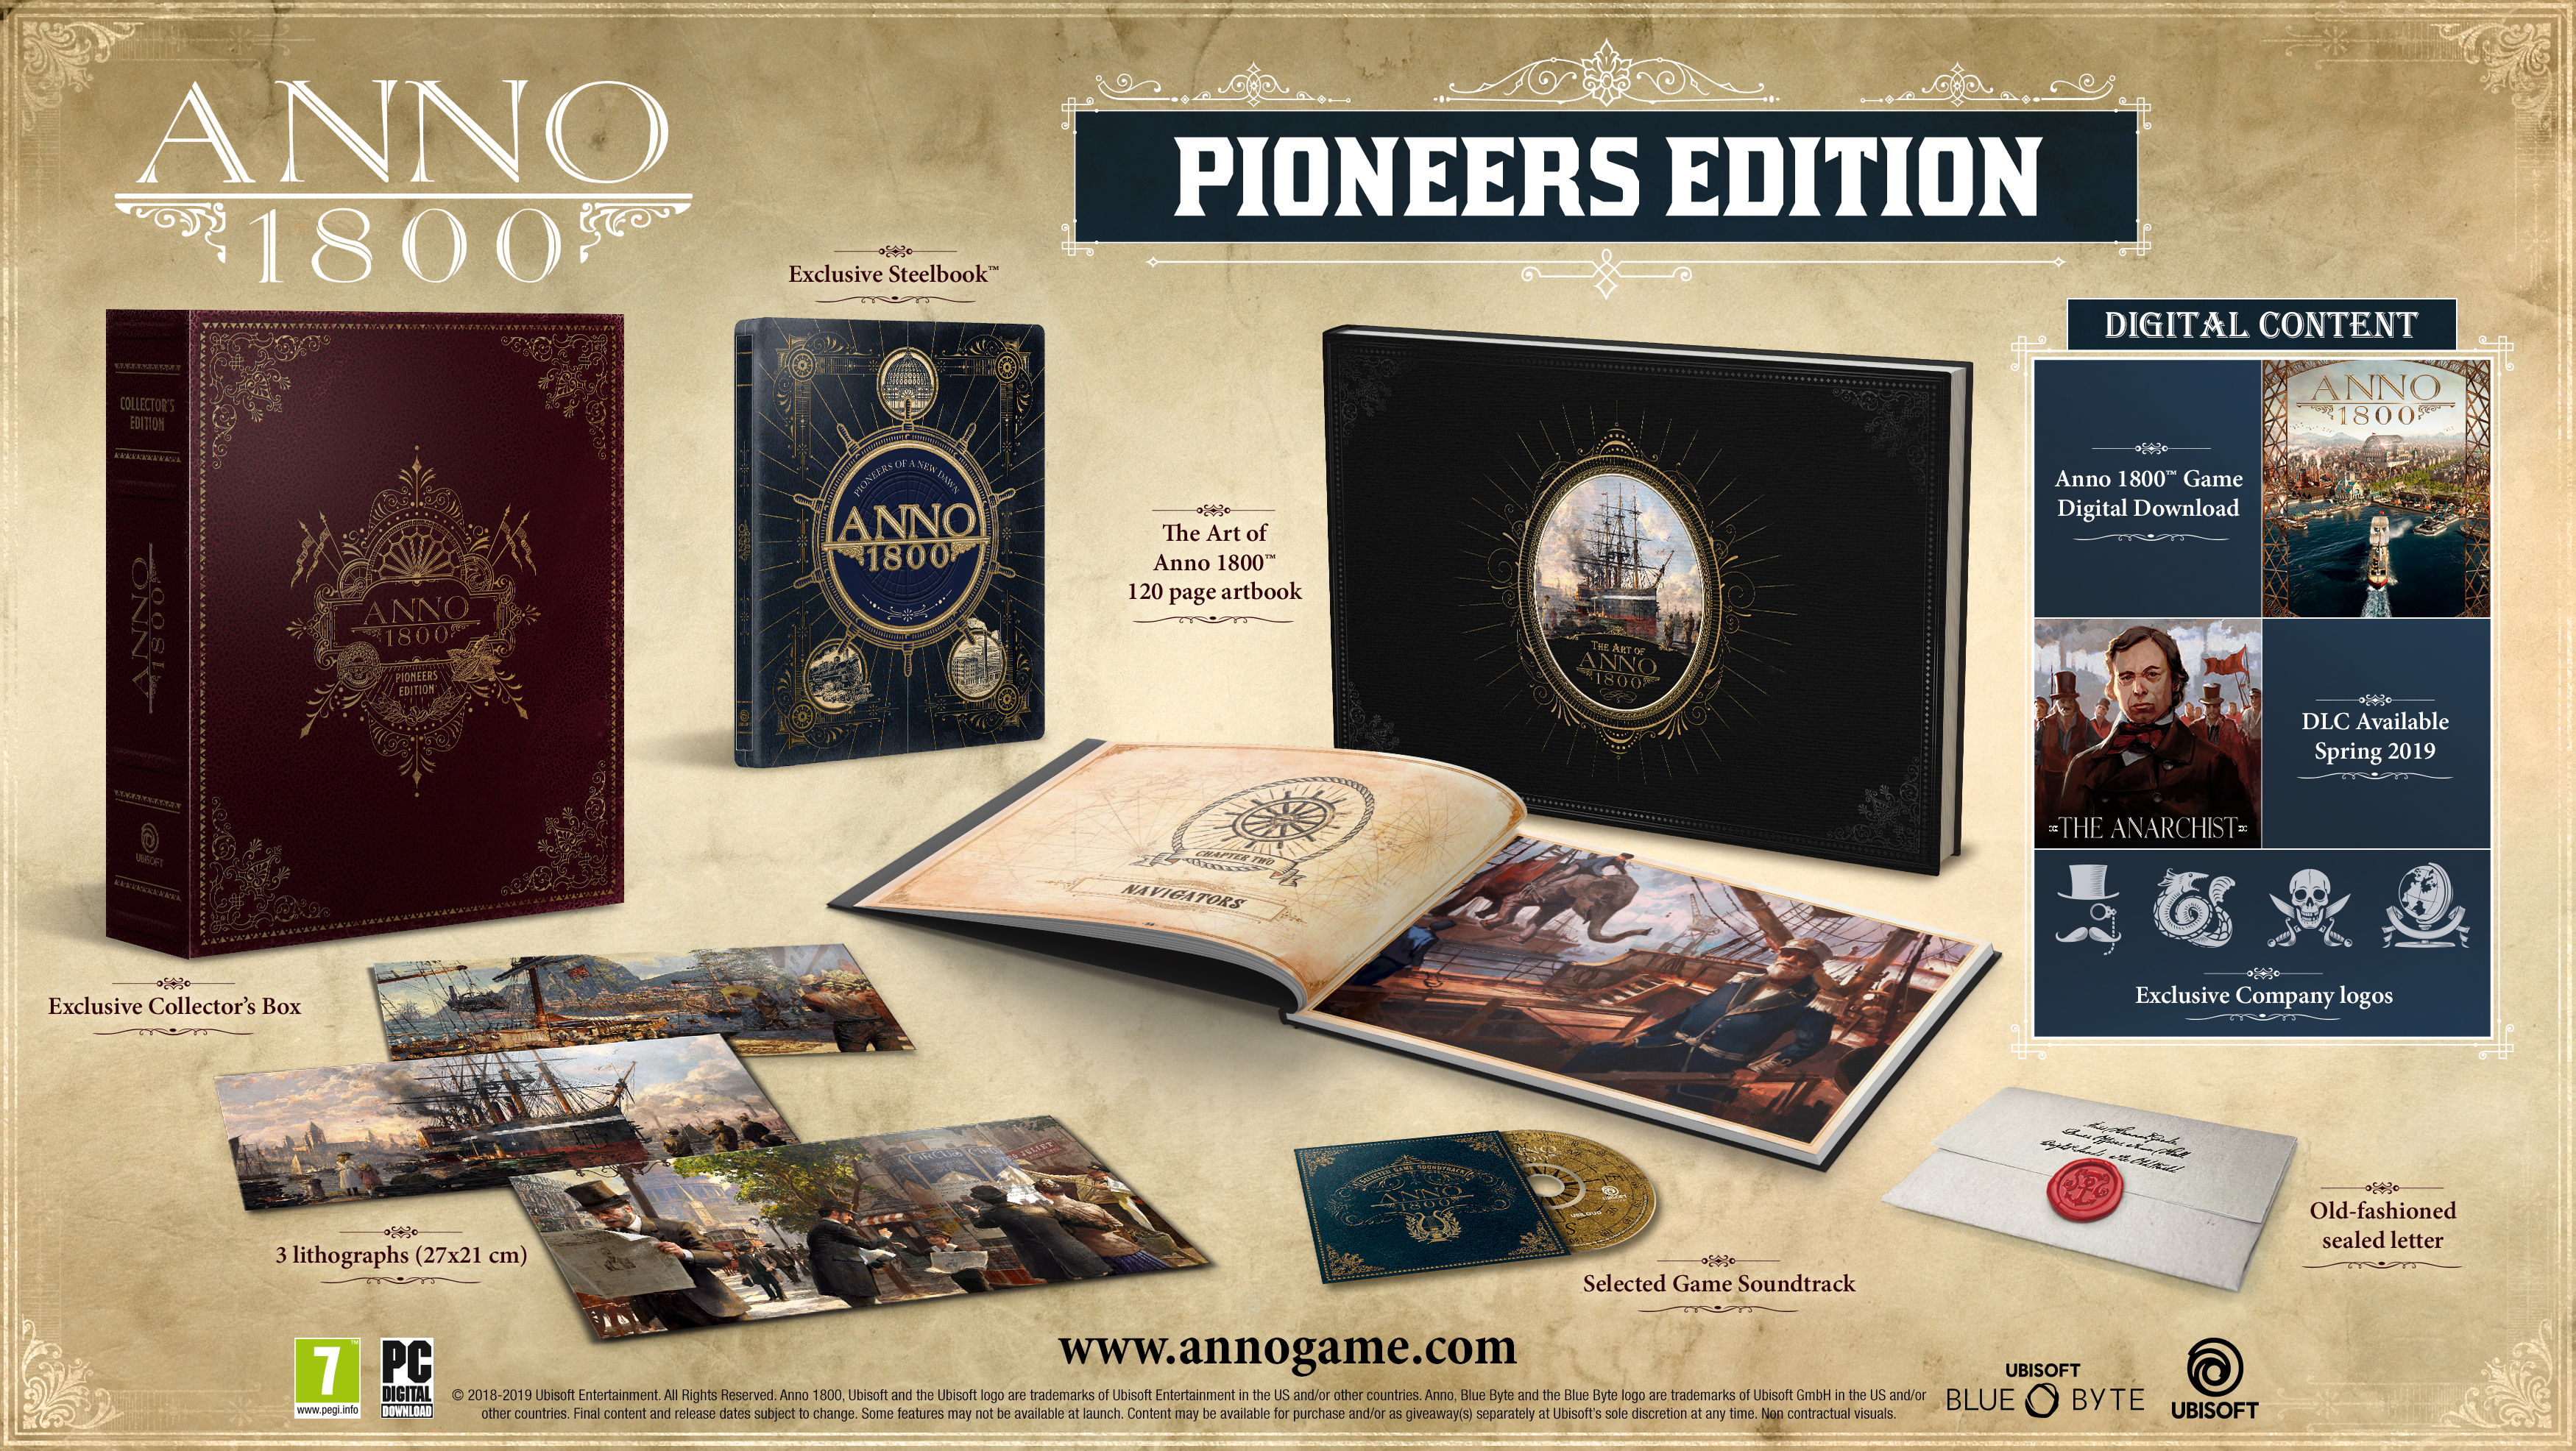 anno-1800-pioneers-edition